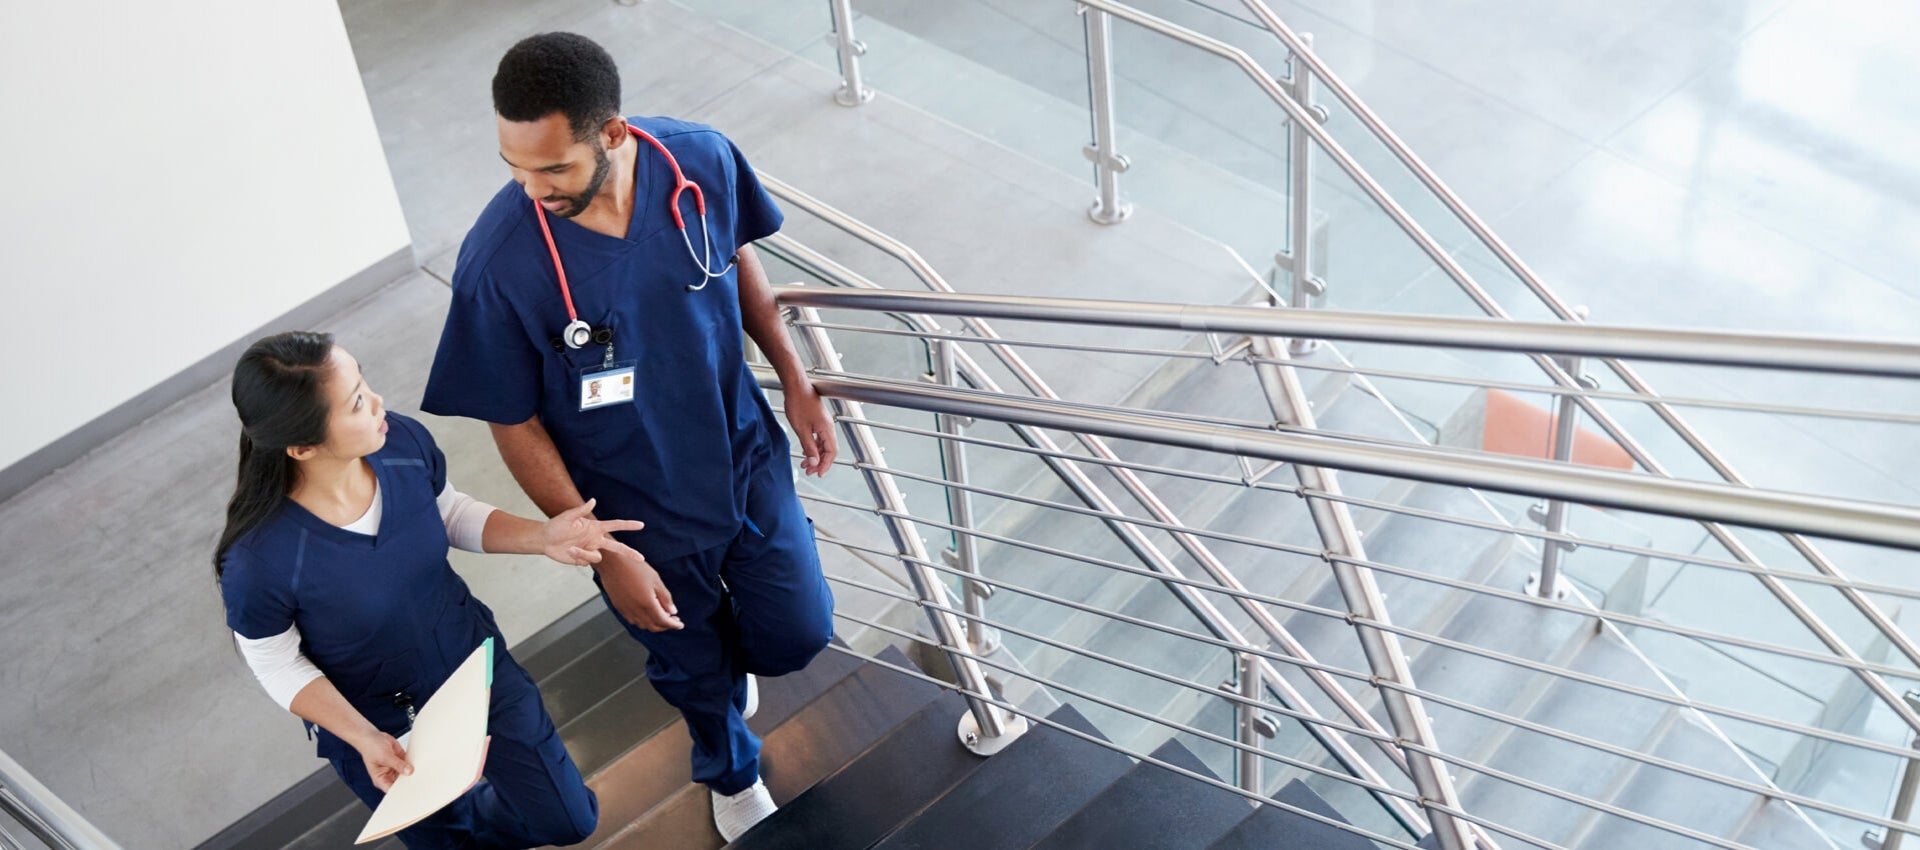 Nurses converse while ascending staircase.